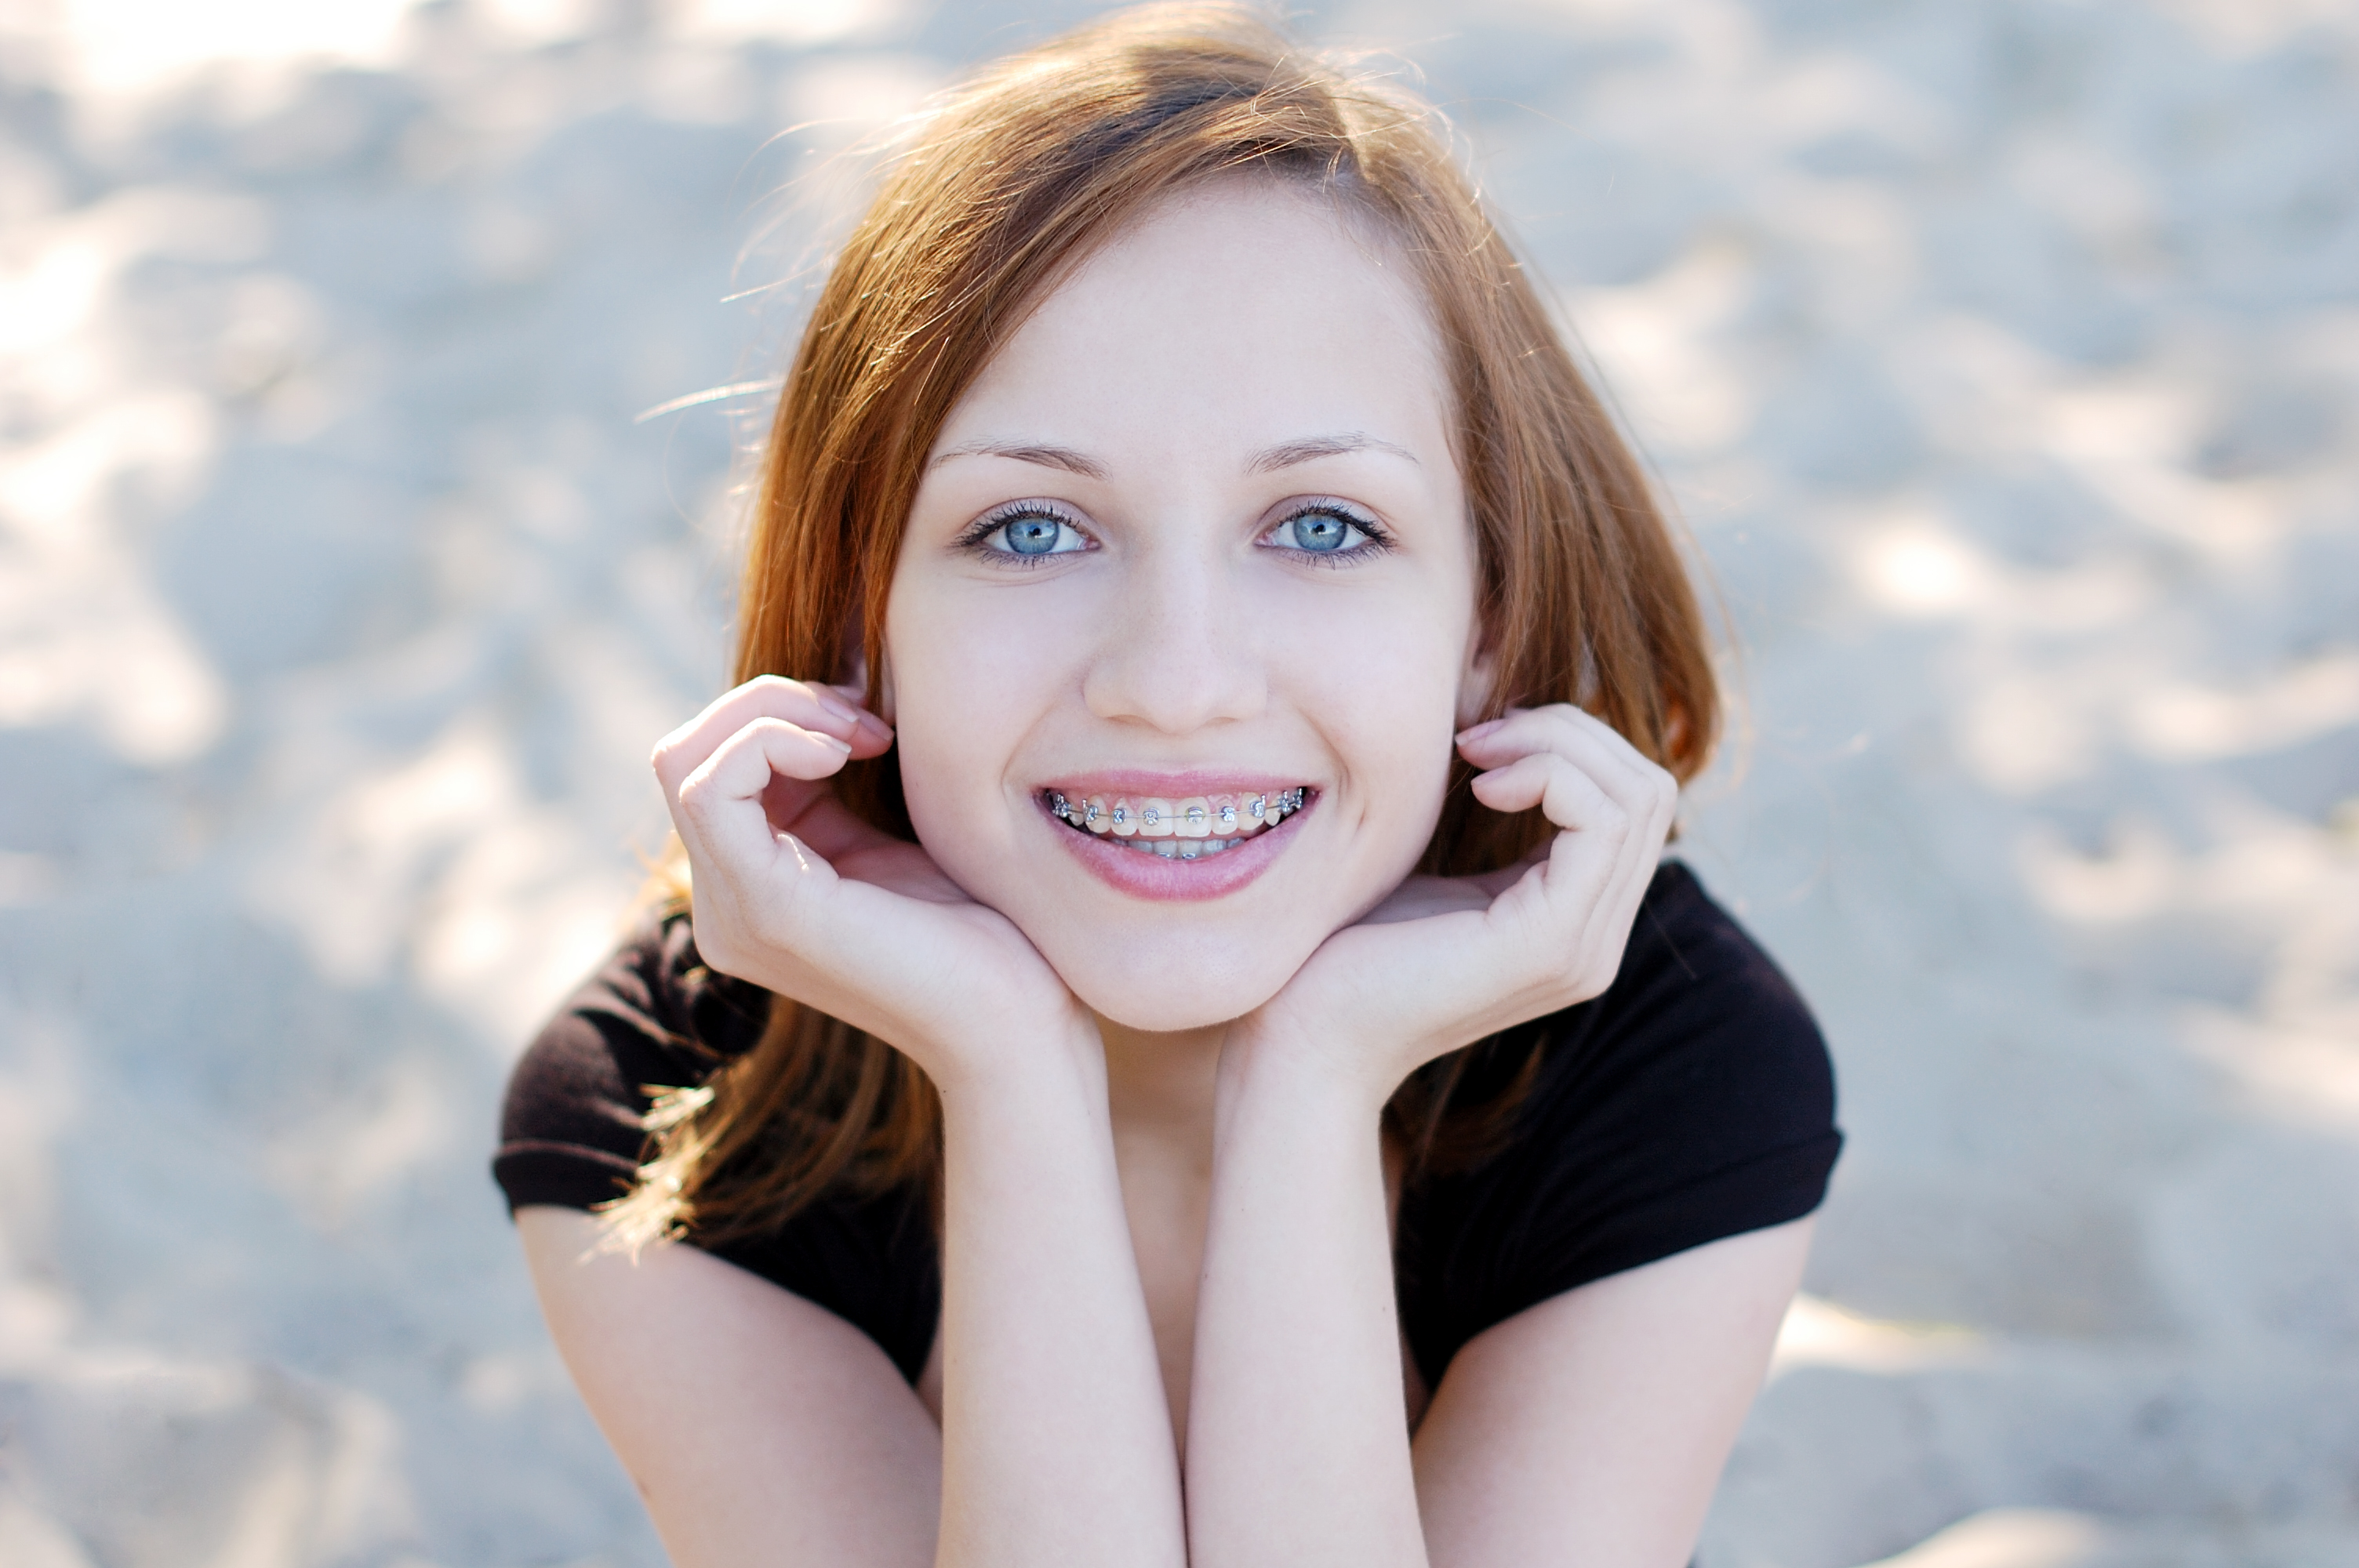 girl with smiling with braces